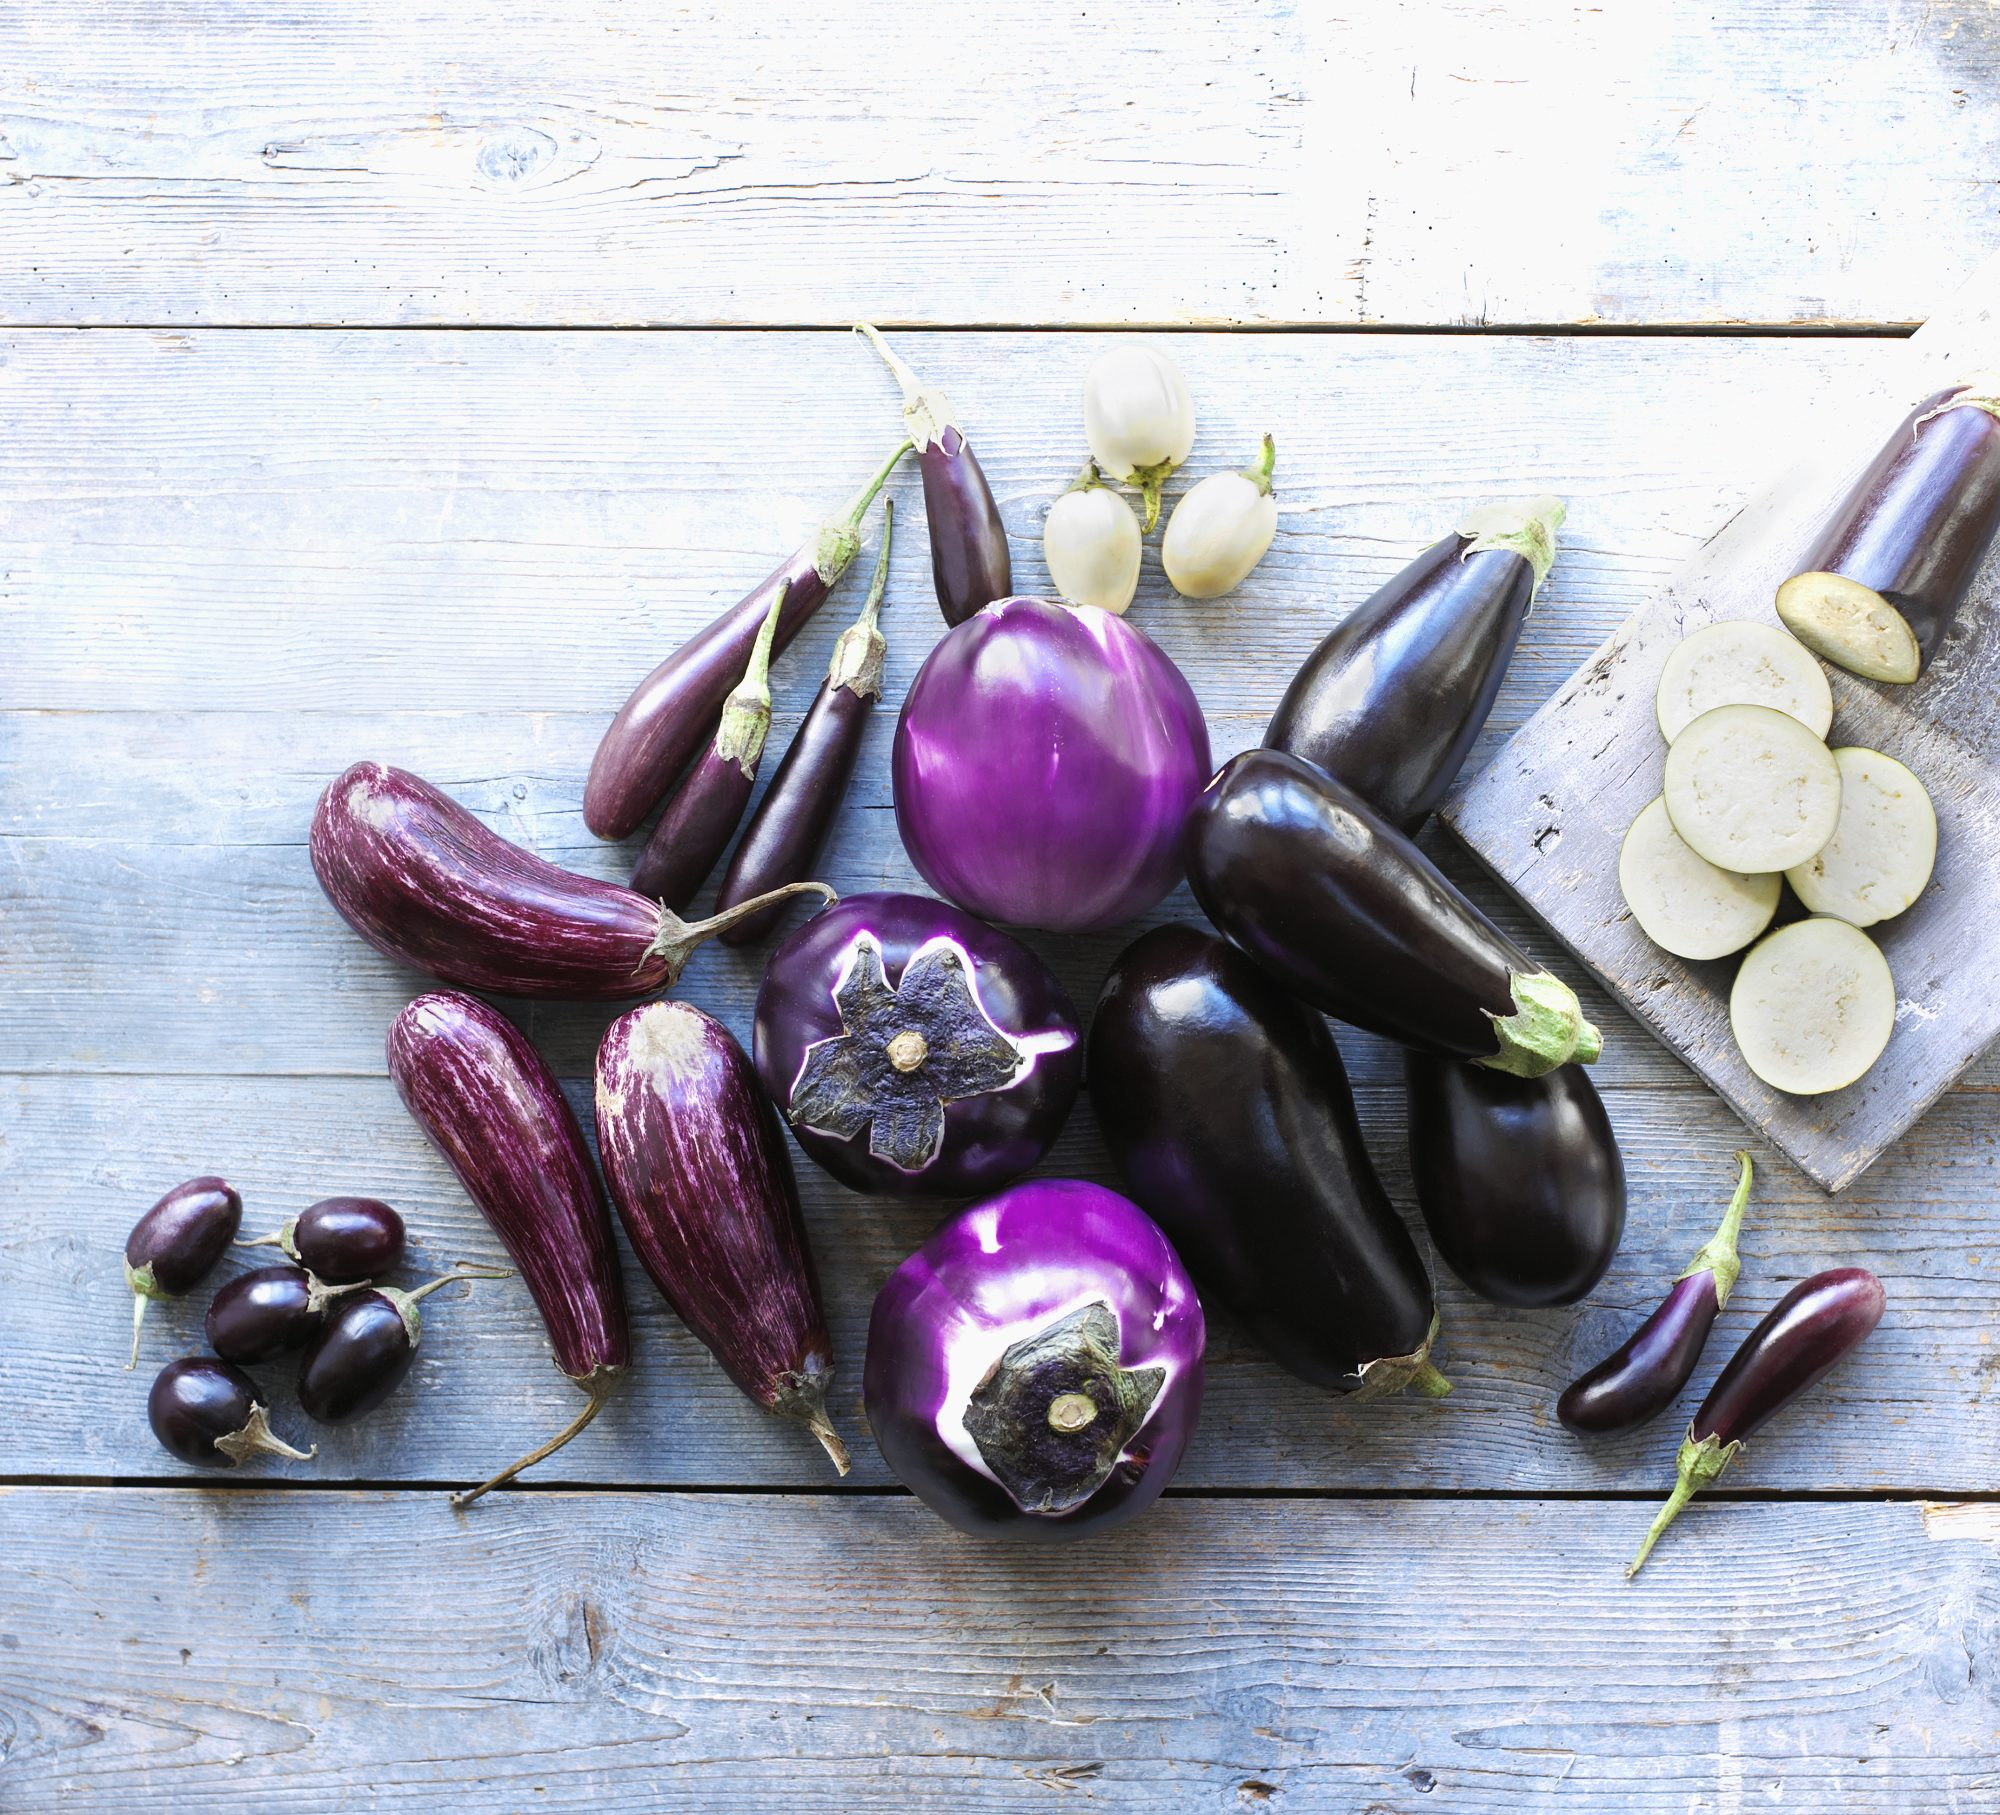 nightshade-vegetable-eggplant